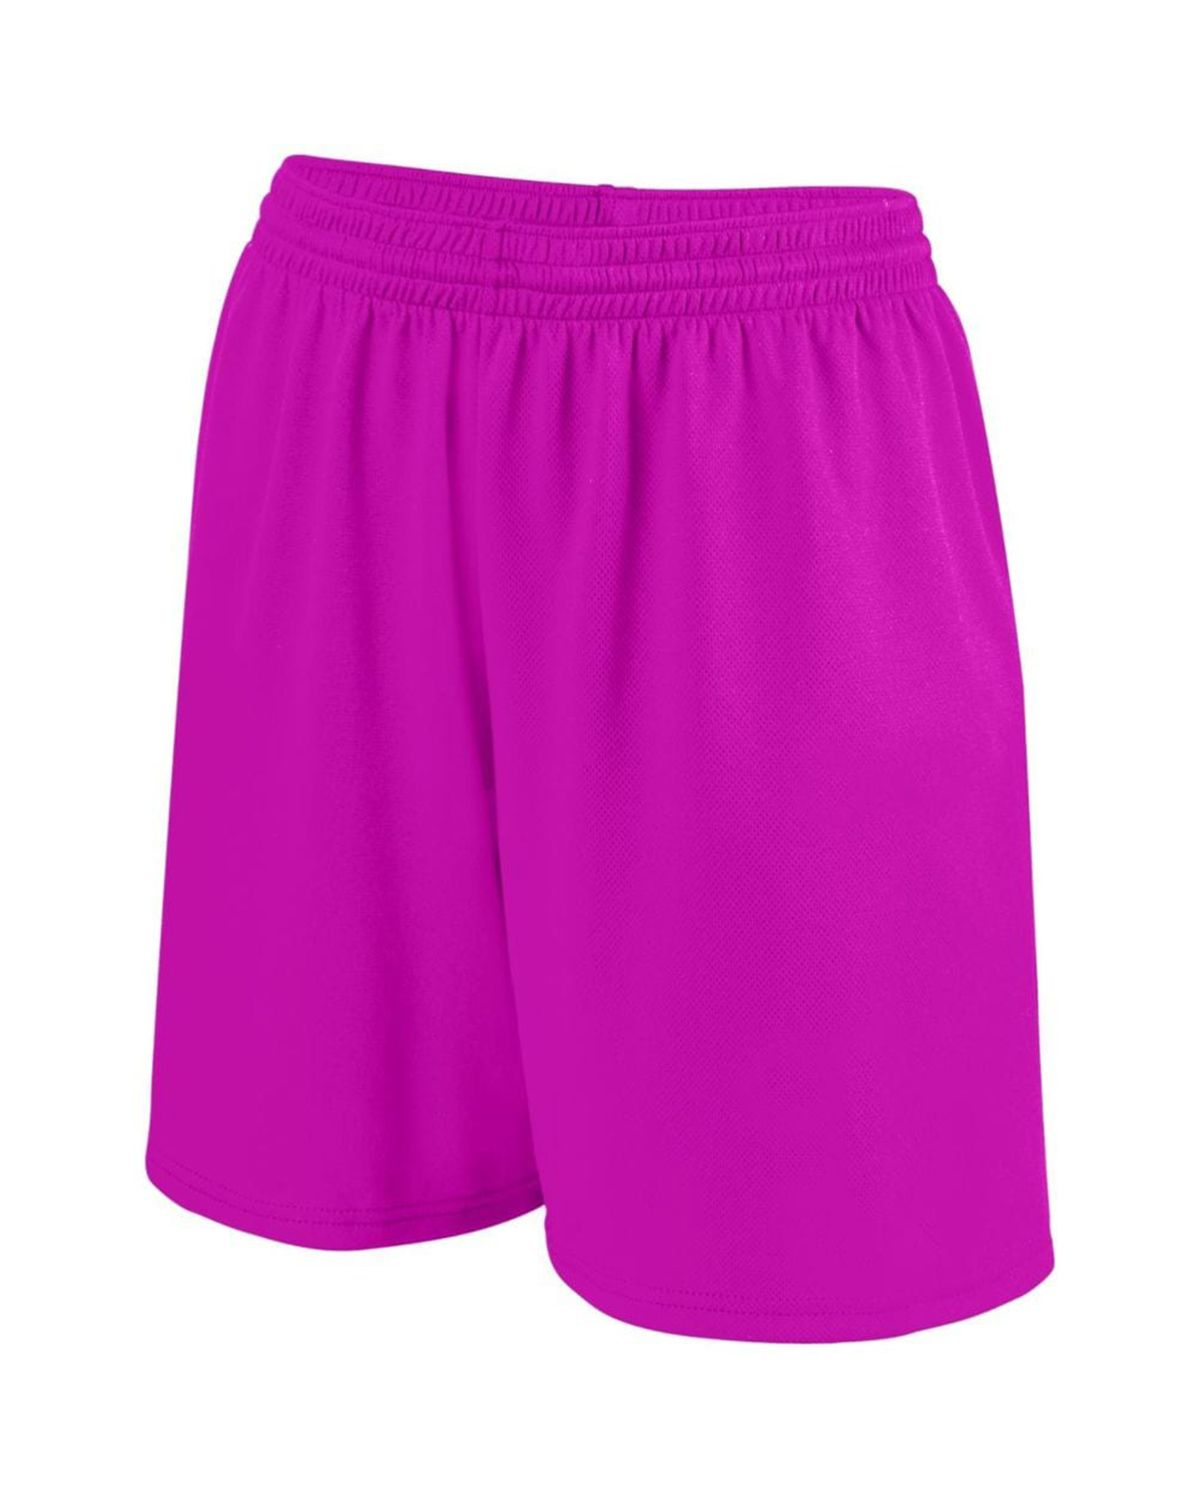 Augusta Sportswear AG962 Shockwave Short - Pow Pink/ White - XL AG962